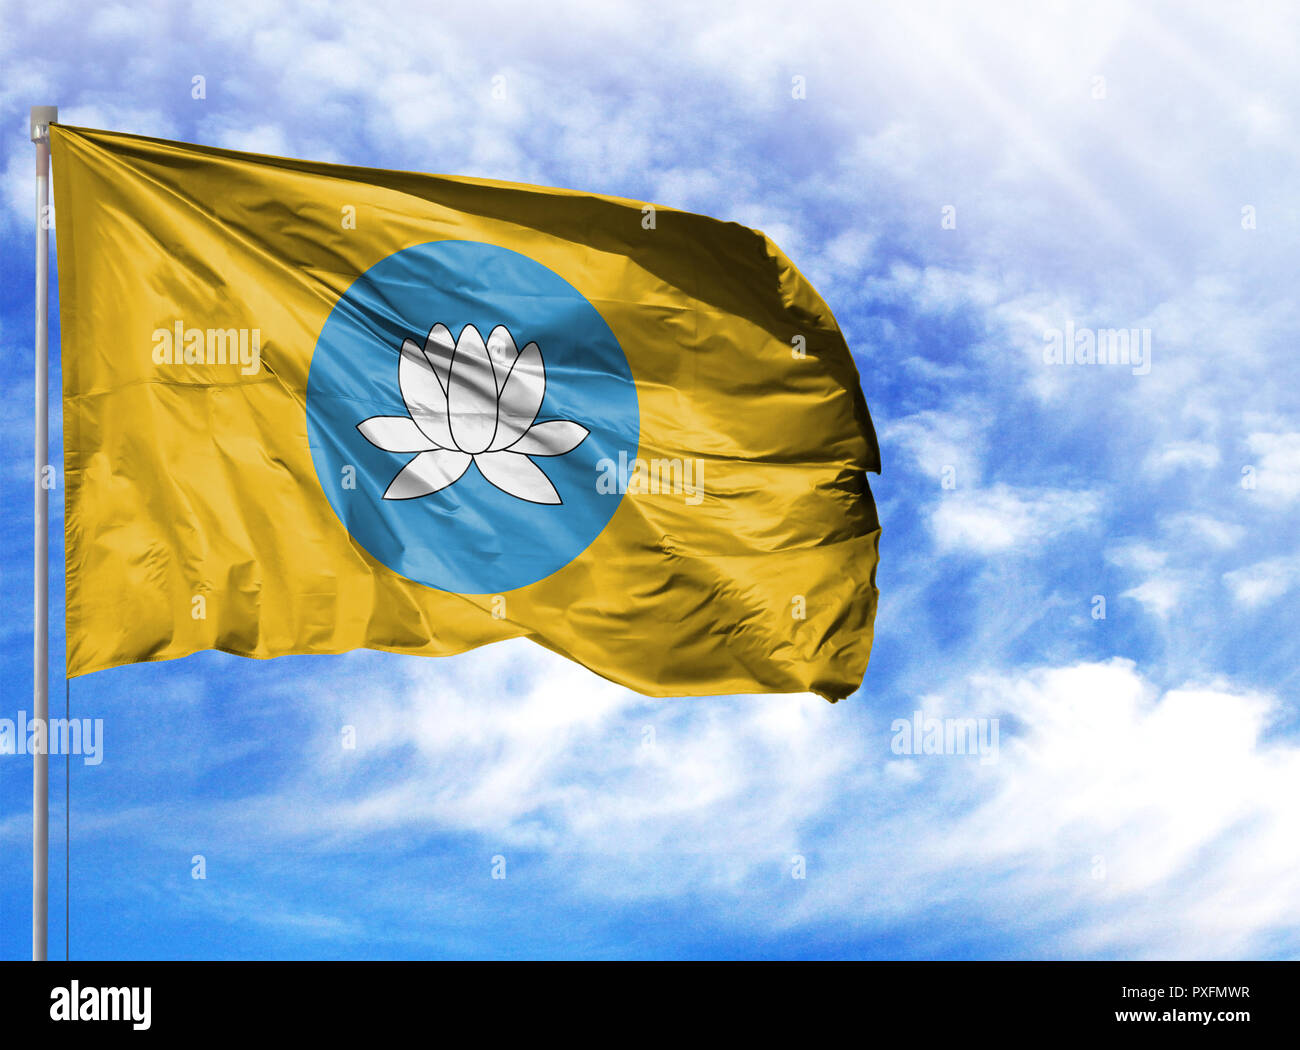 National flag of Kalmykia on a flagpole in front of blue sky. - Stock Image